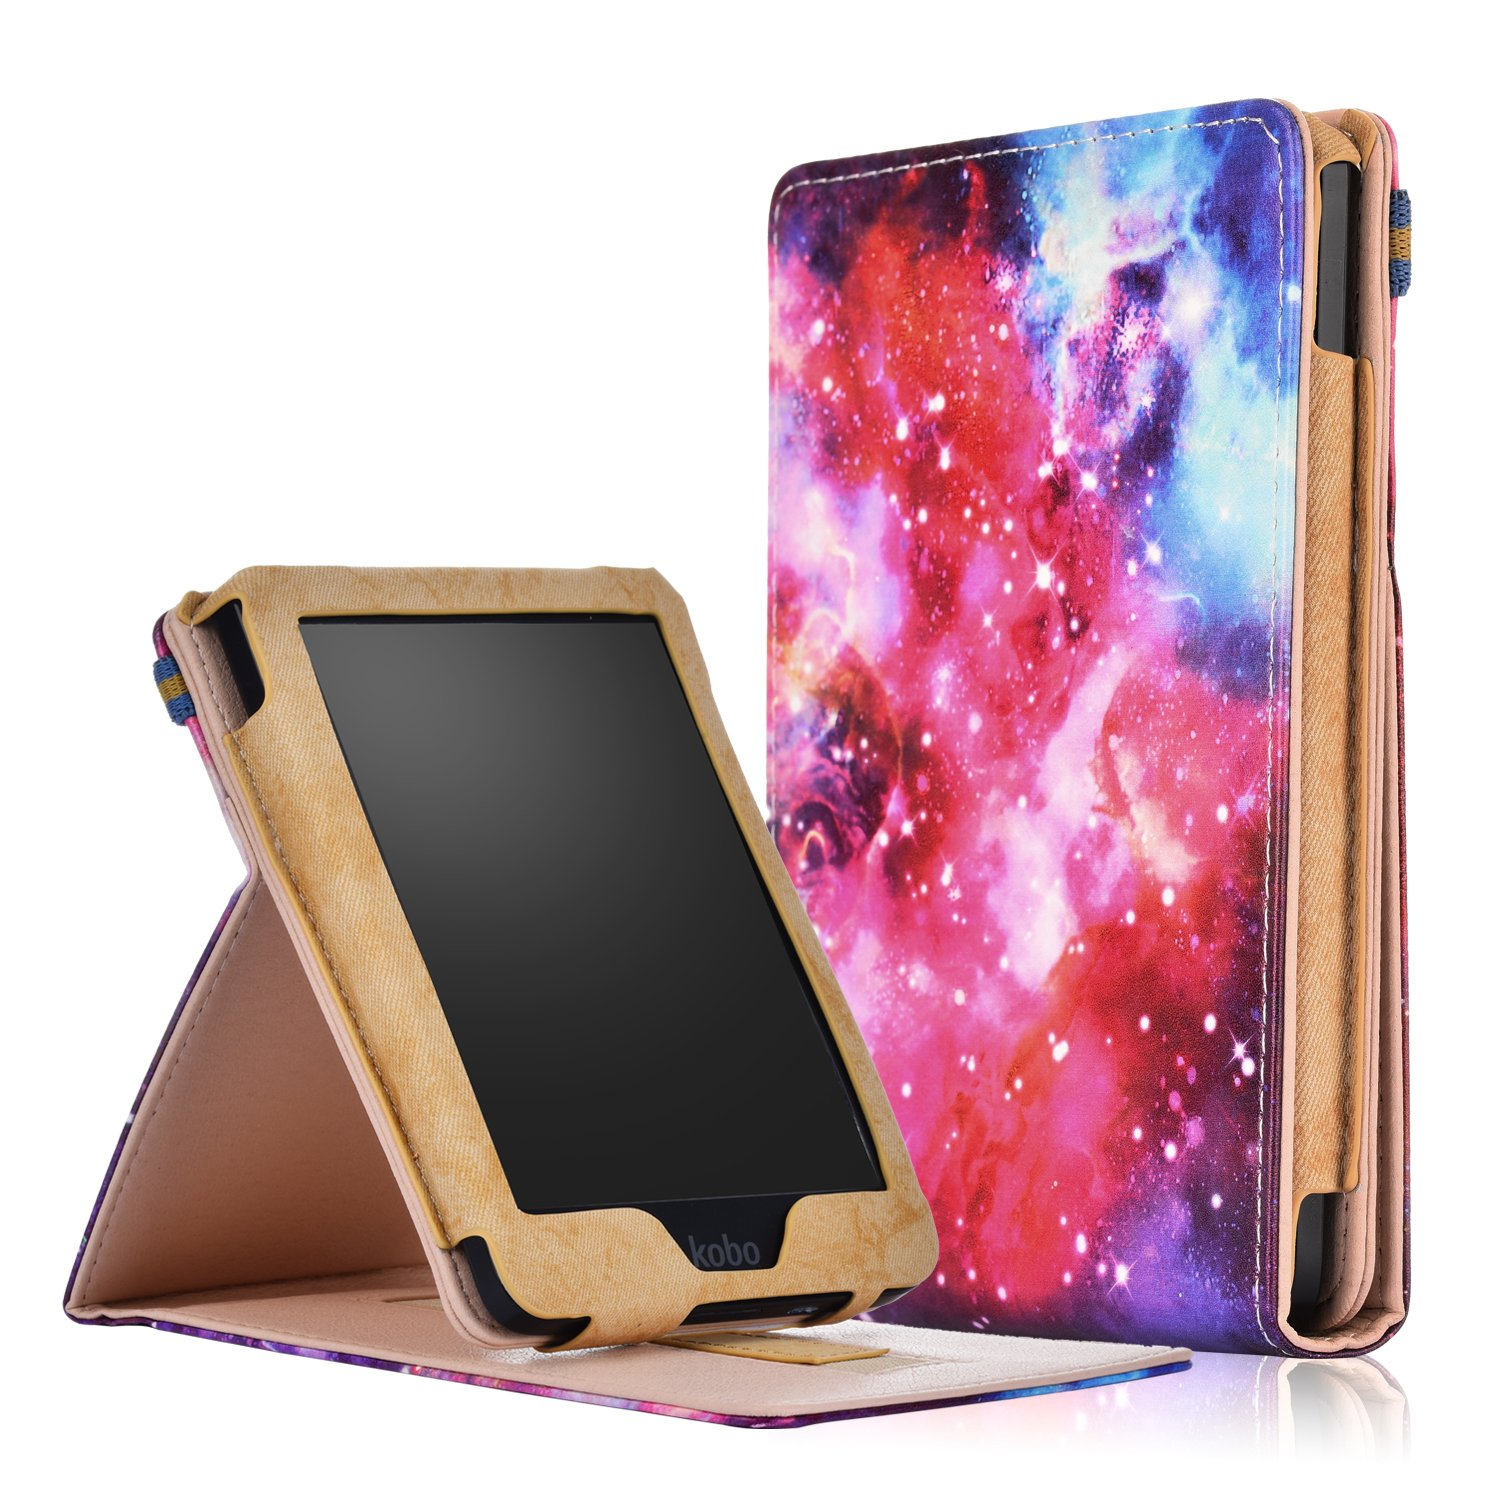 Kobo Ereader Clara HD Case, Gylint Premium Leather Business Slim Folding Stand Folio Cover with Auto Wake/Sleep Multiple Viewing Angles for Kobo Ereader Clara HD 6.0i Tablet (Painting)